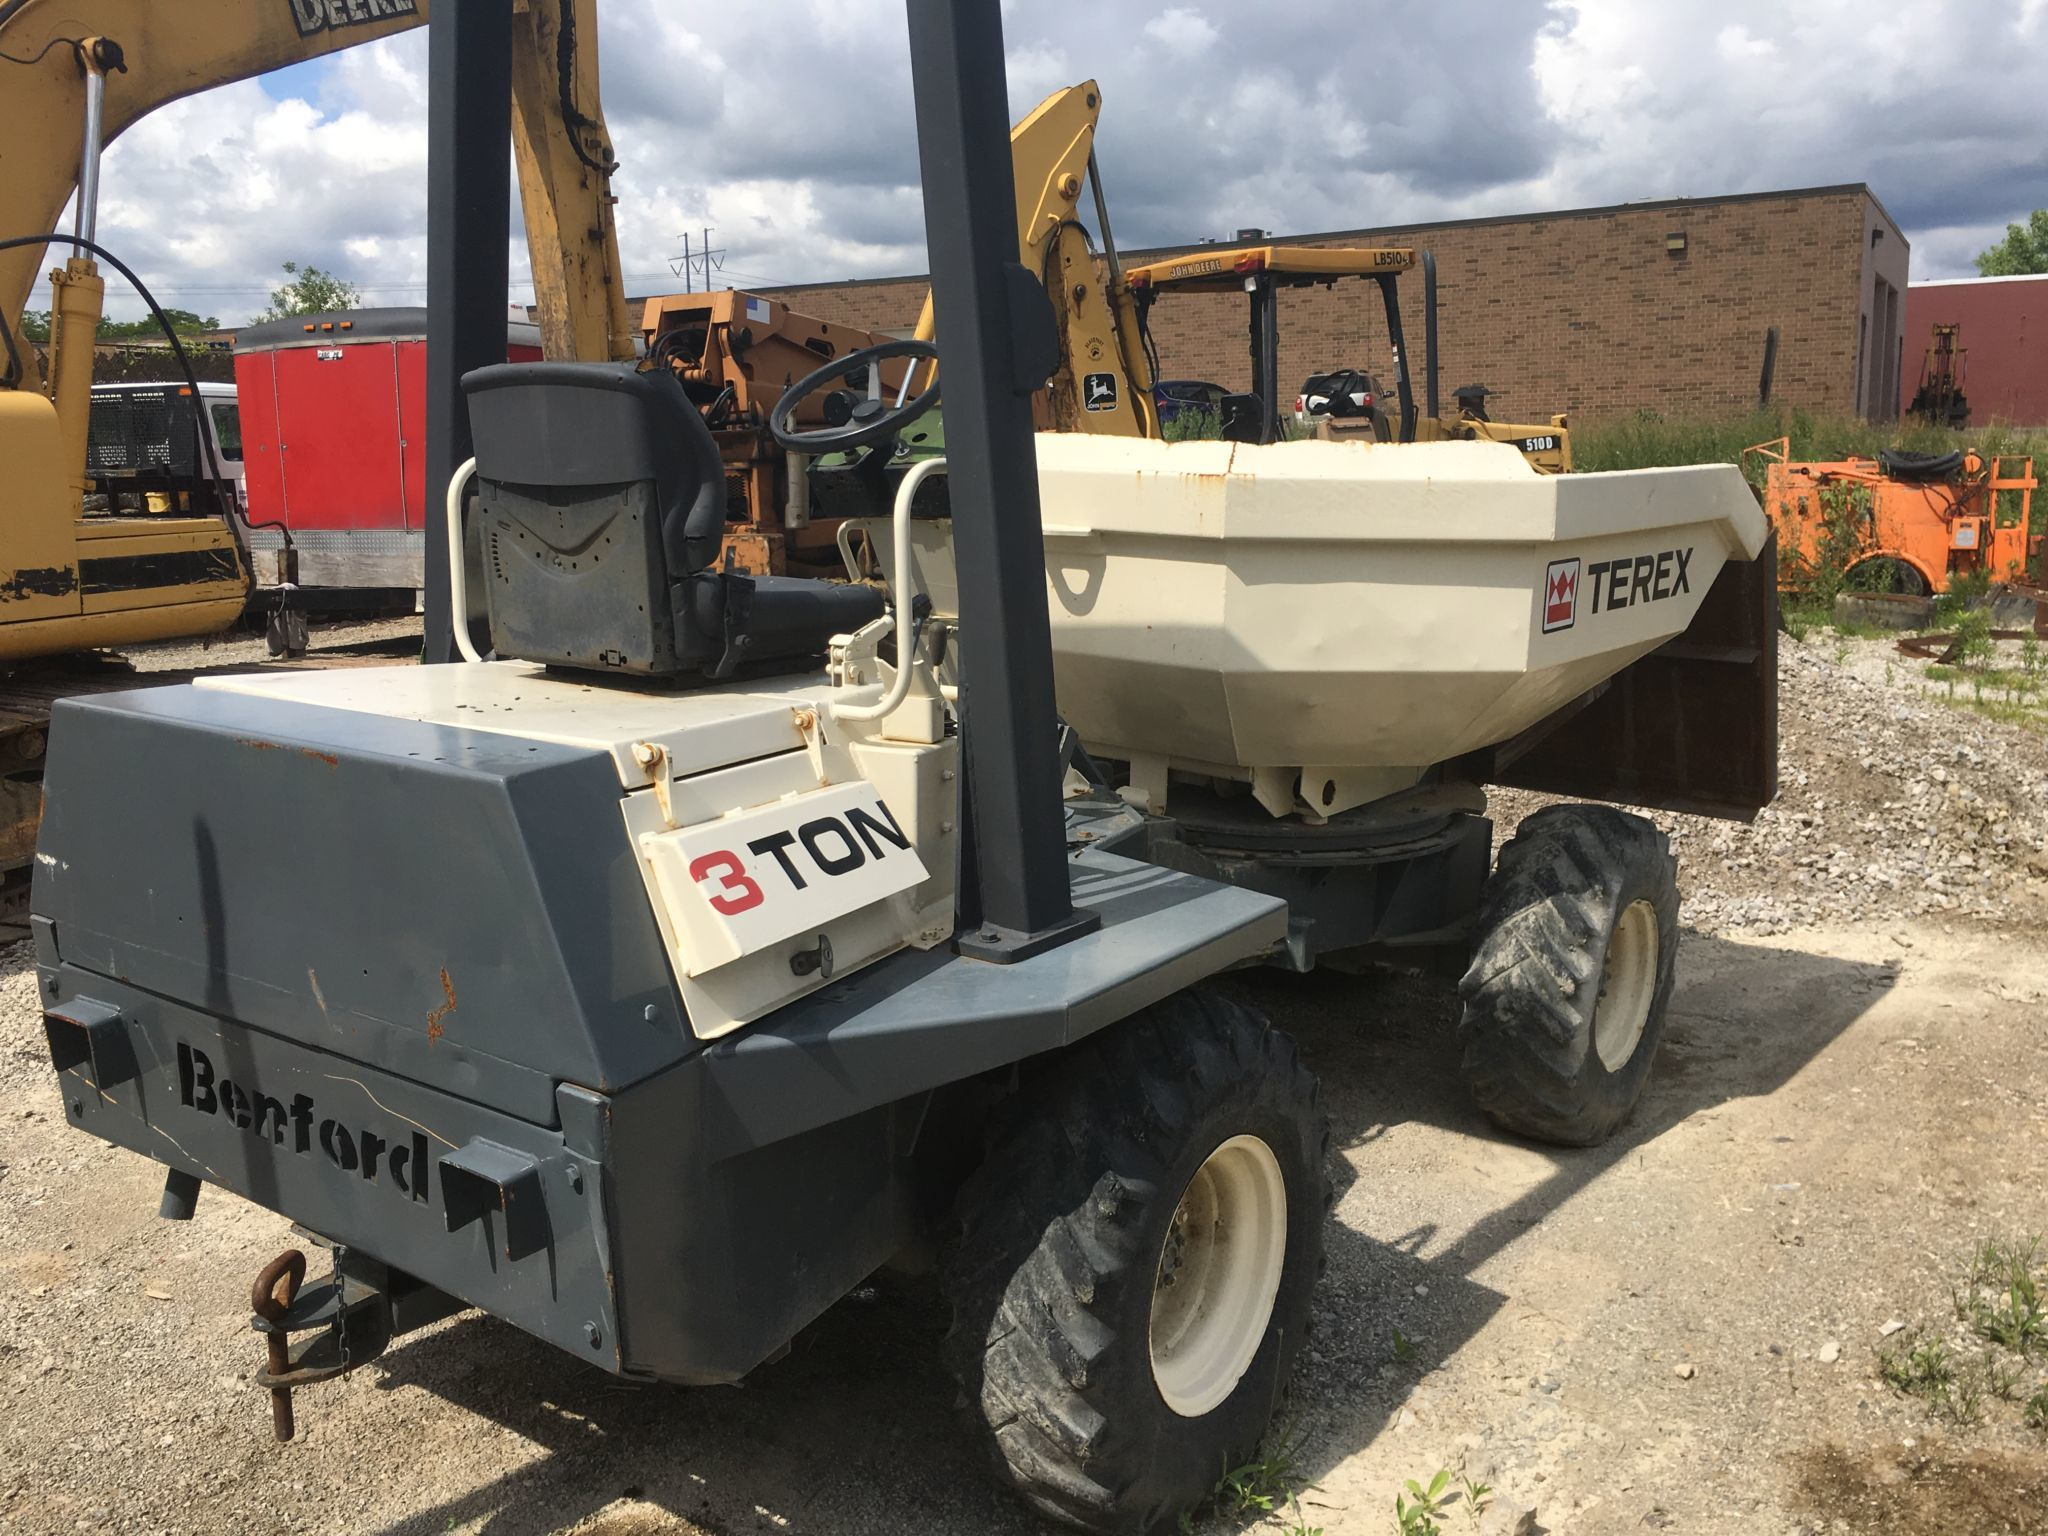 Terex 3 ton concrete transport buggy